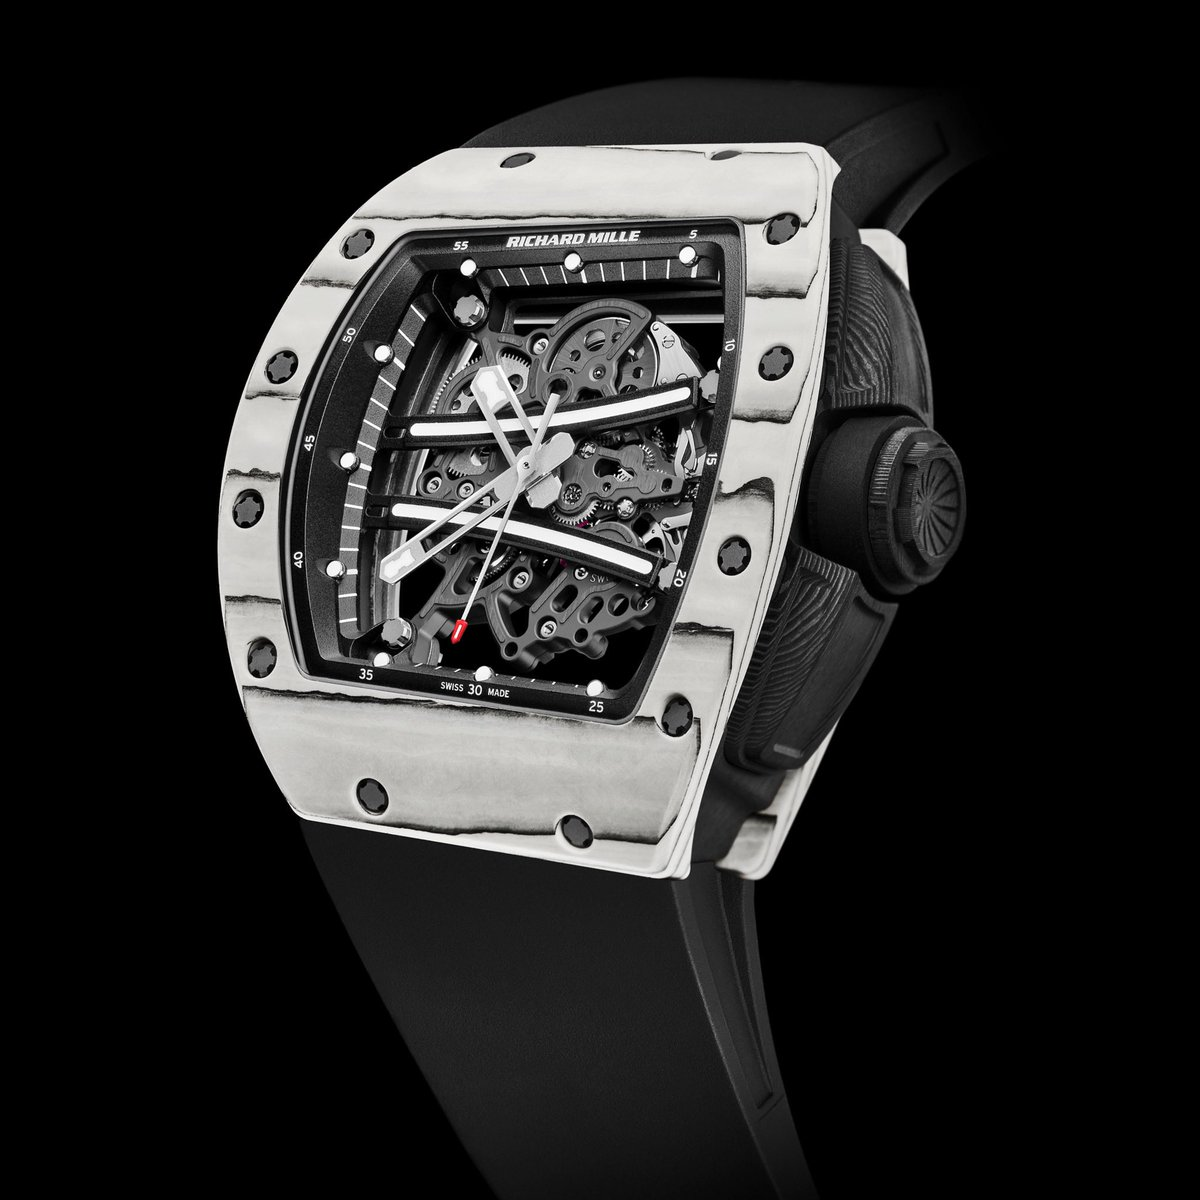 Tested for impacts of over 5,000 g's, the highly skeletonised RM61-01 calibre crafted of PVD-treated grade 5 titanium ensures simple and effective performance. #RichardMille